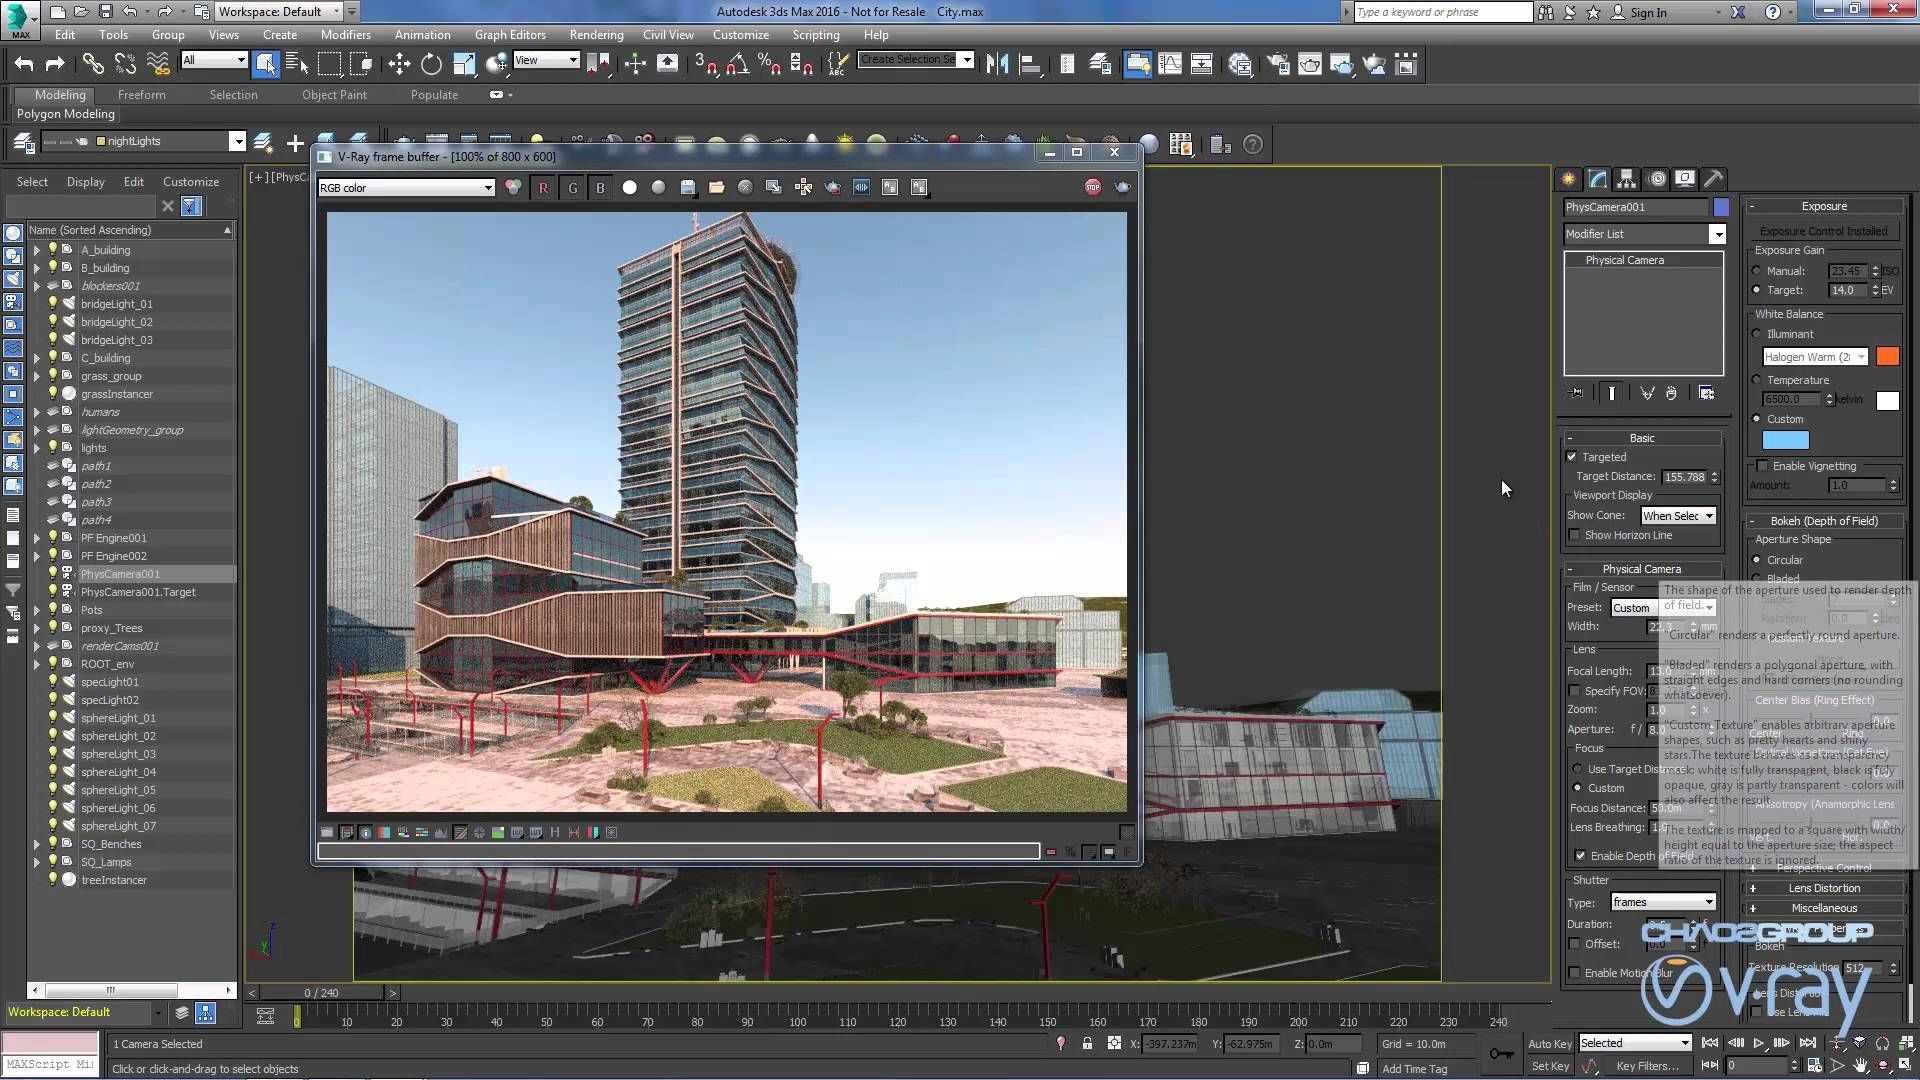 Nueva Physical Camera en VRay 3.2 para 3ds Max 2016 3ds